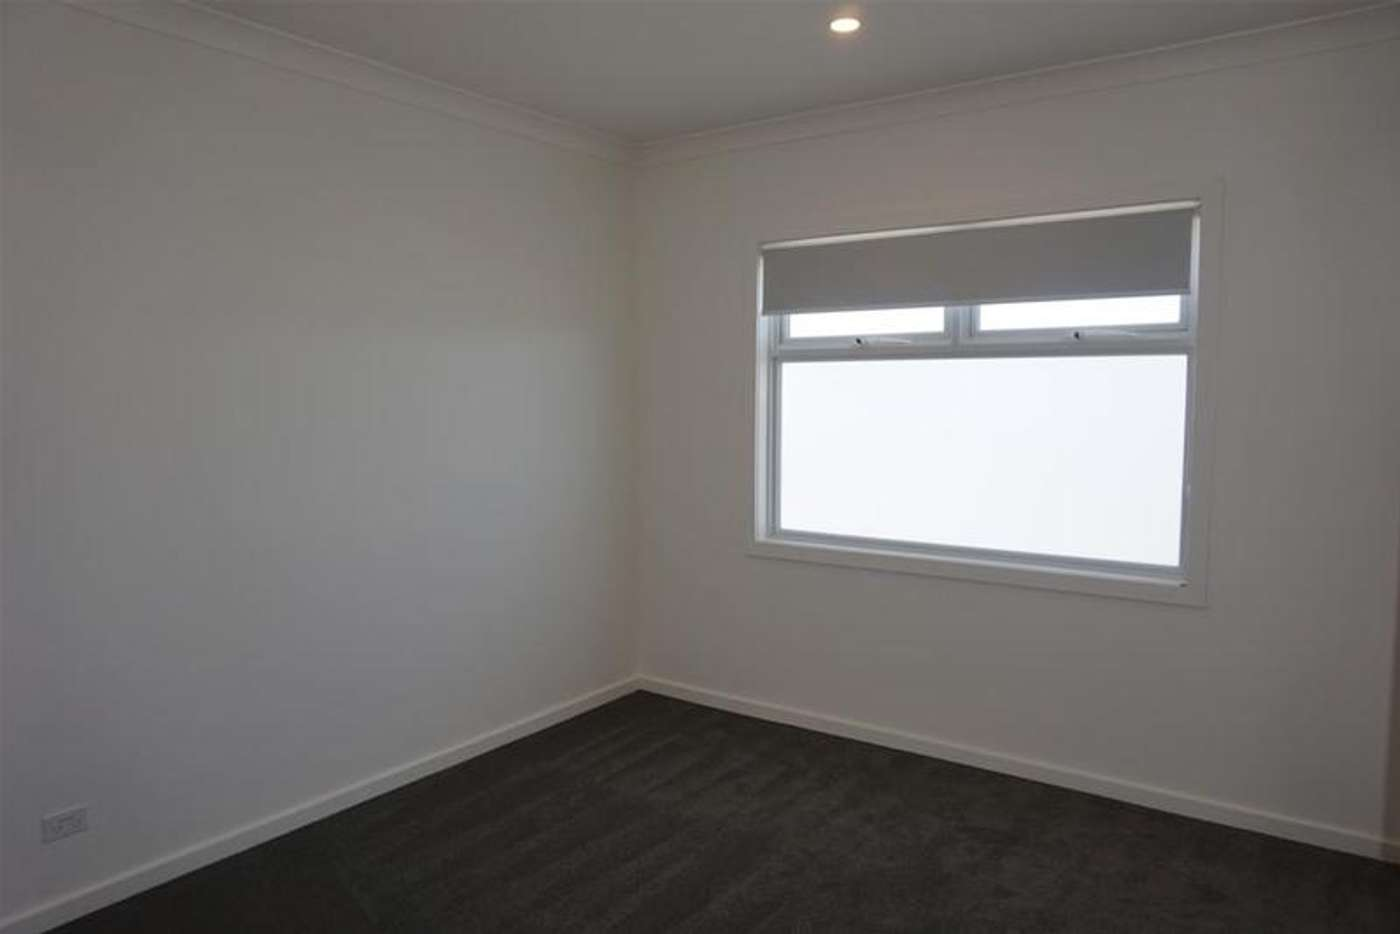 Seventh view of Homely house listing, 792 A Tarneit Road, Tarneit VIC 3029